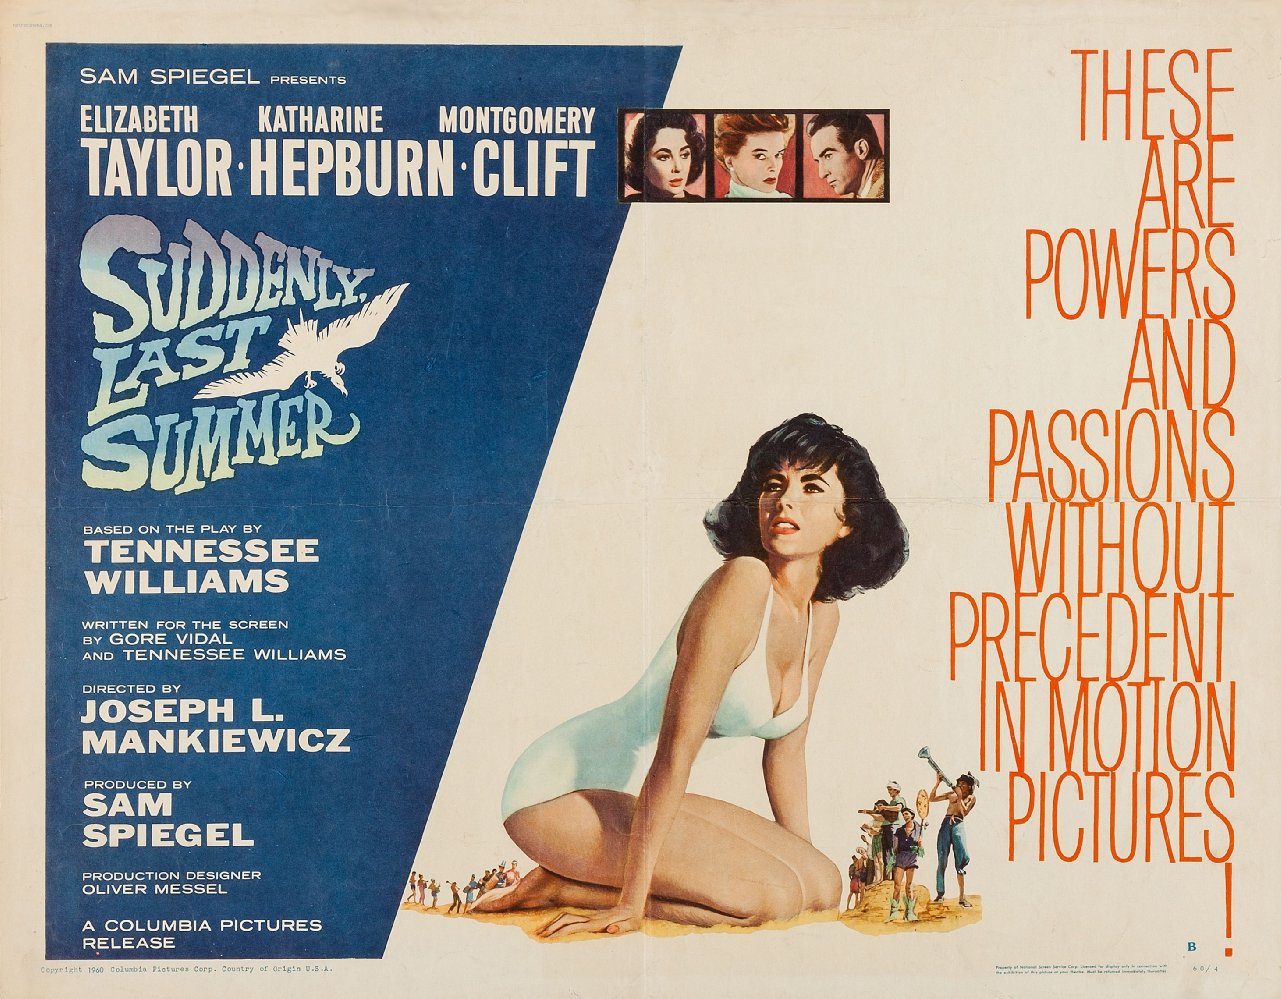 Directed by Joseph L. Mankiewicz, Based on the play by Tennessee Williams Starring Elizabeth Taylor, Katherine Hepburn, Montgomery Clift